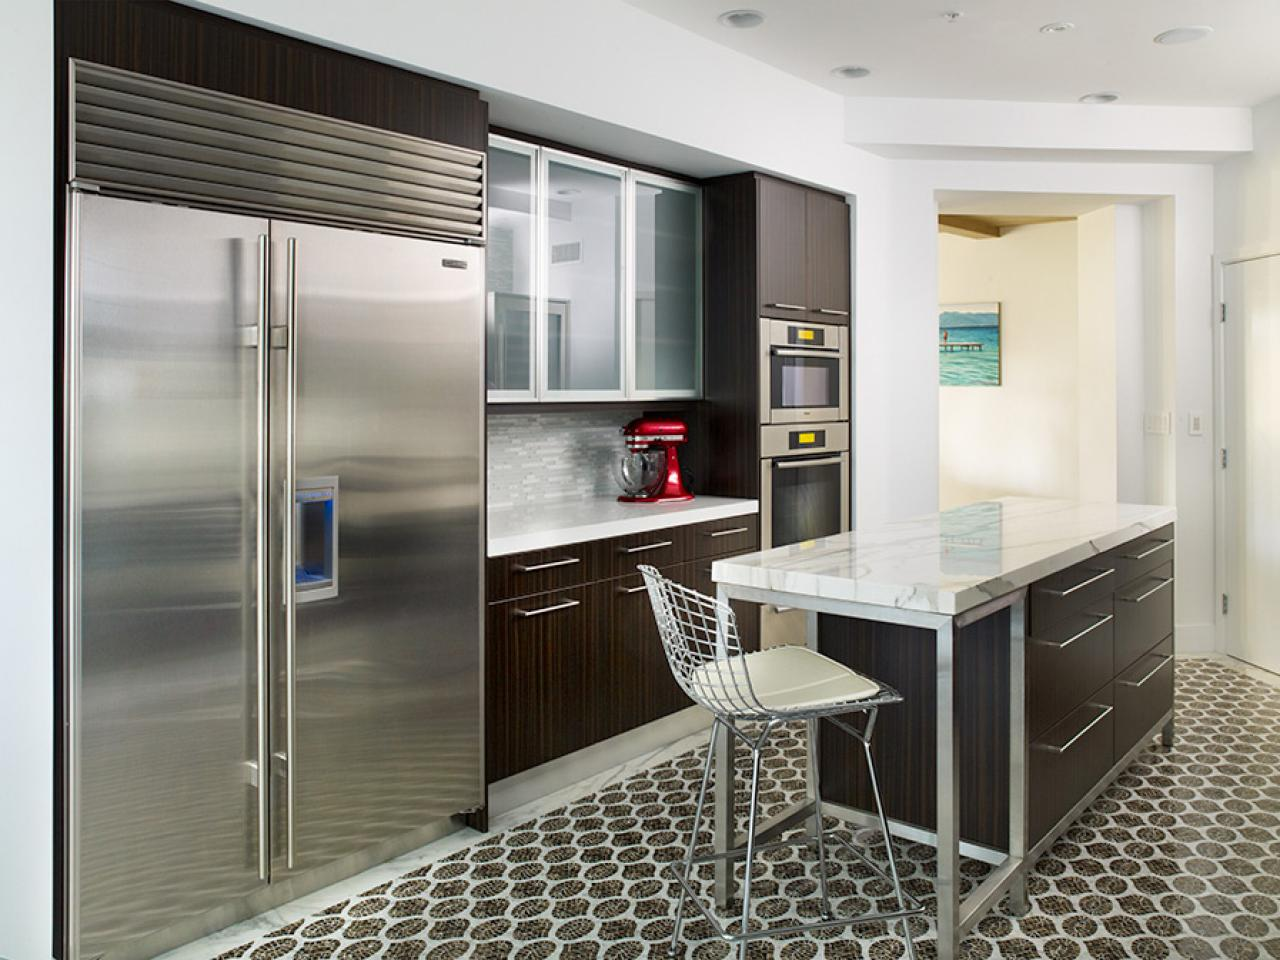 Images Of Modern Kitchens Small Modern Kitchen Design Ideas Hgtv Pictures And Tips Hgtv